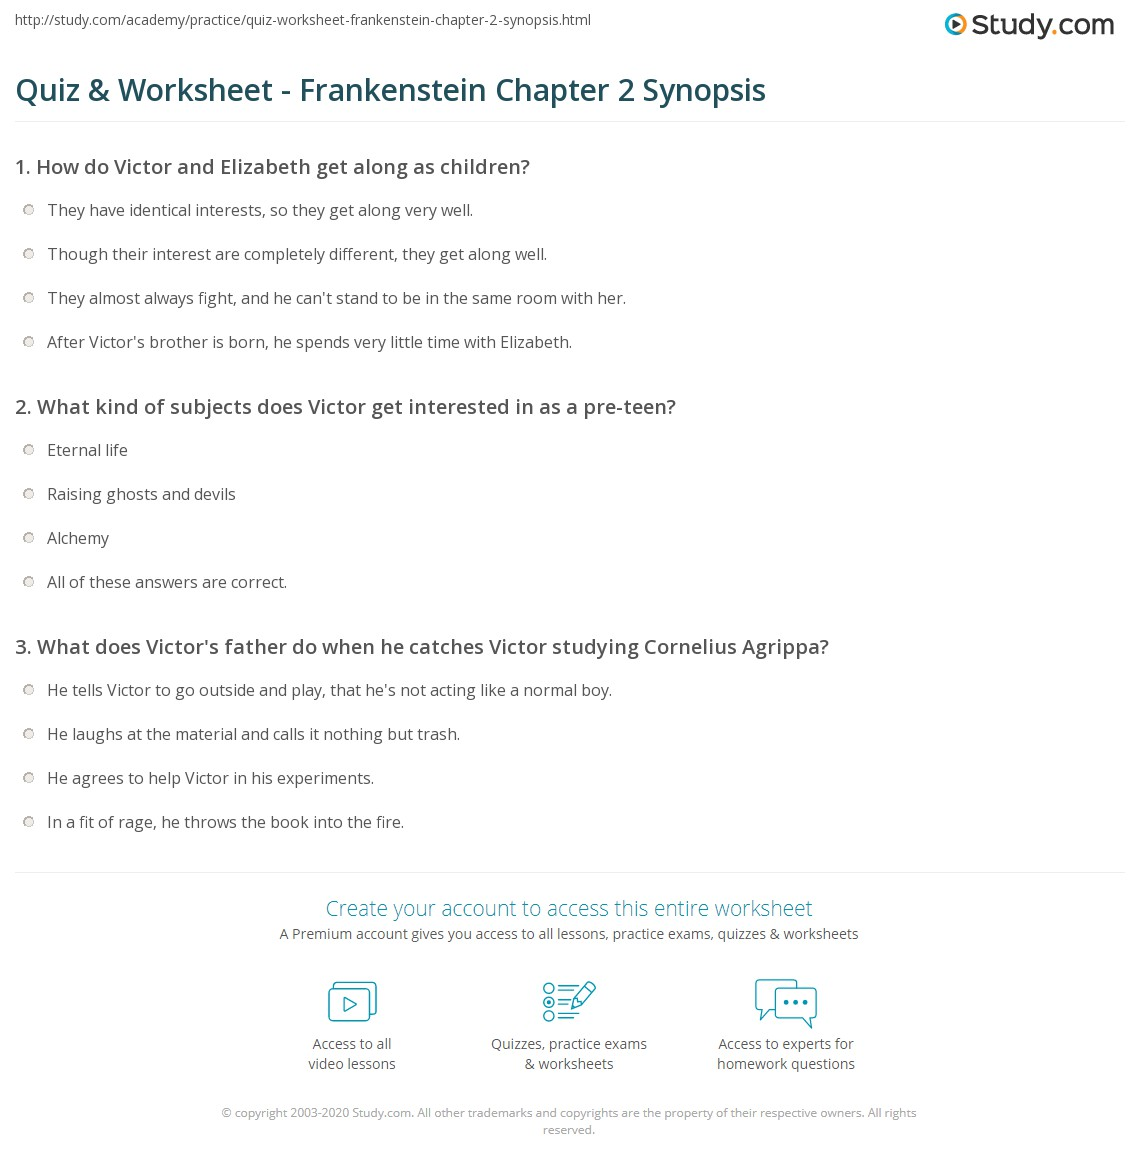 quiz worksheet frankenstein chapter 2 synopsis study com rh study com Frankenstein Study Guide Glencoe Answers Frankenstein Study Guide Glencoe Answers